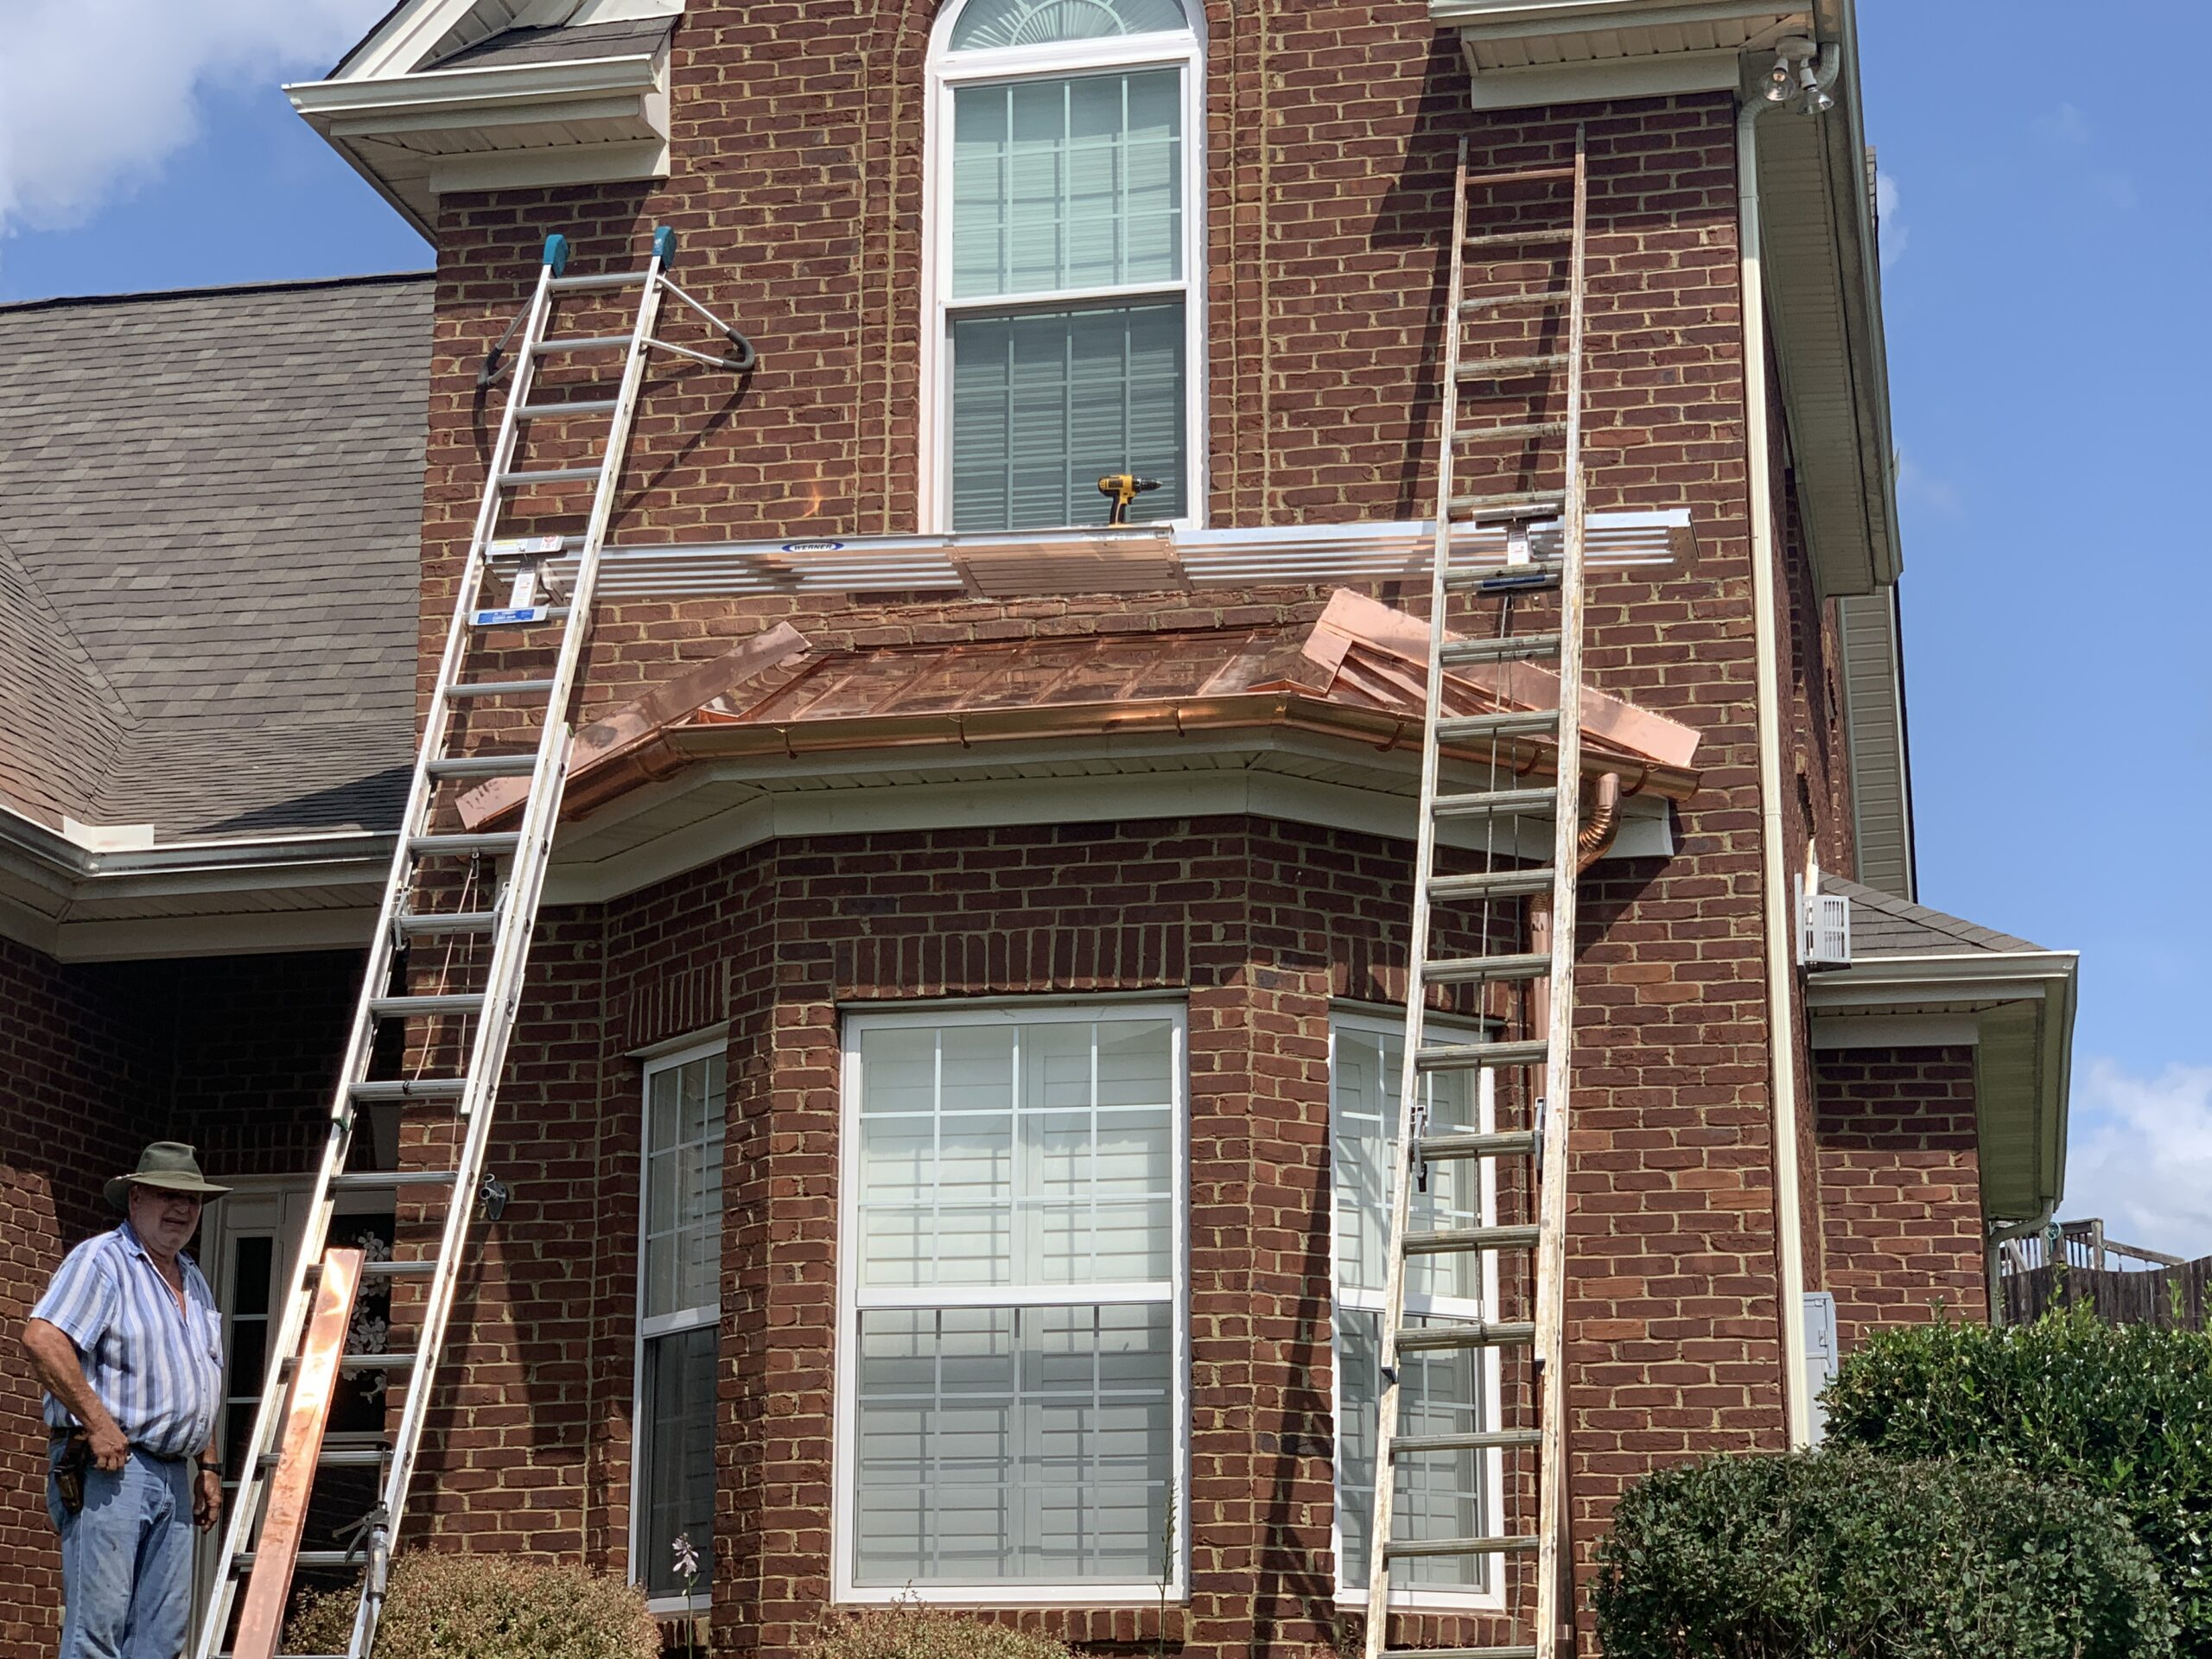 Copper accents added to bed windows or dormers or even eyebrows can add a little stale to anyone's home and greatly increase curb appeal